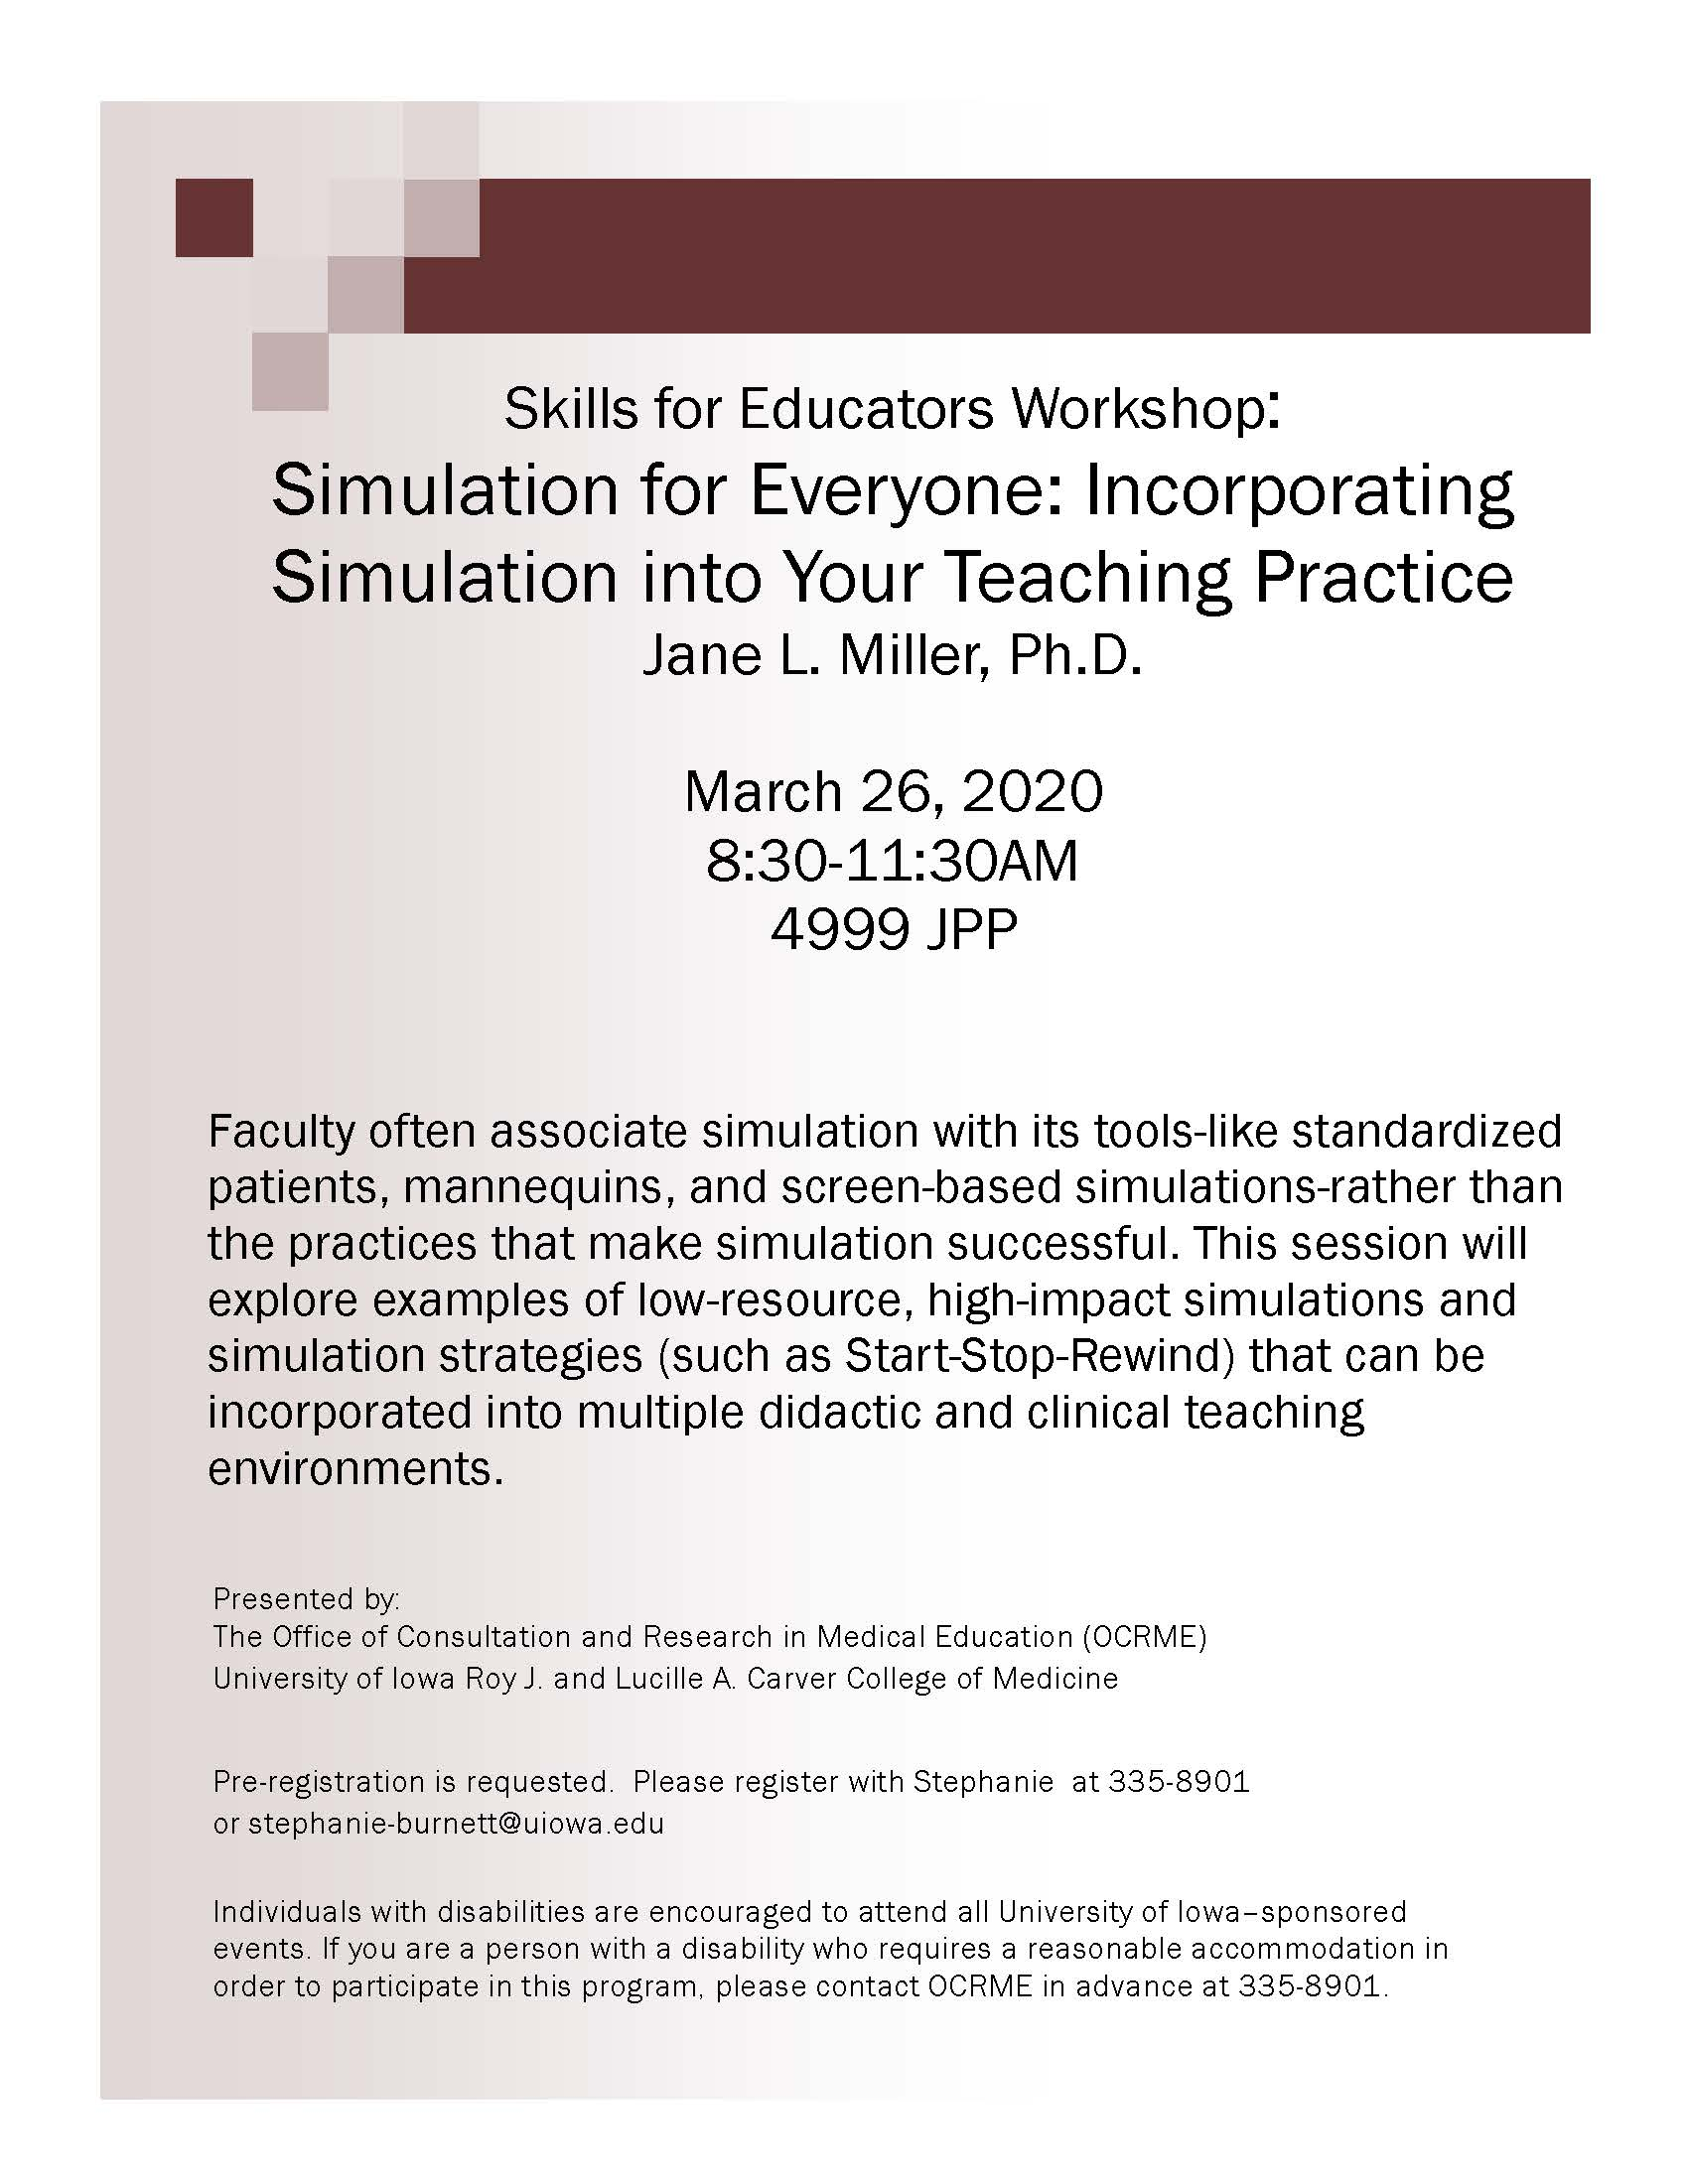 Skills for Educators Workshop: Simulation for Everyone Incorporating Simulation into Your Teaching Practice promotional image